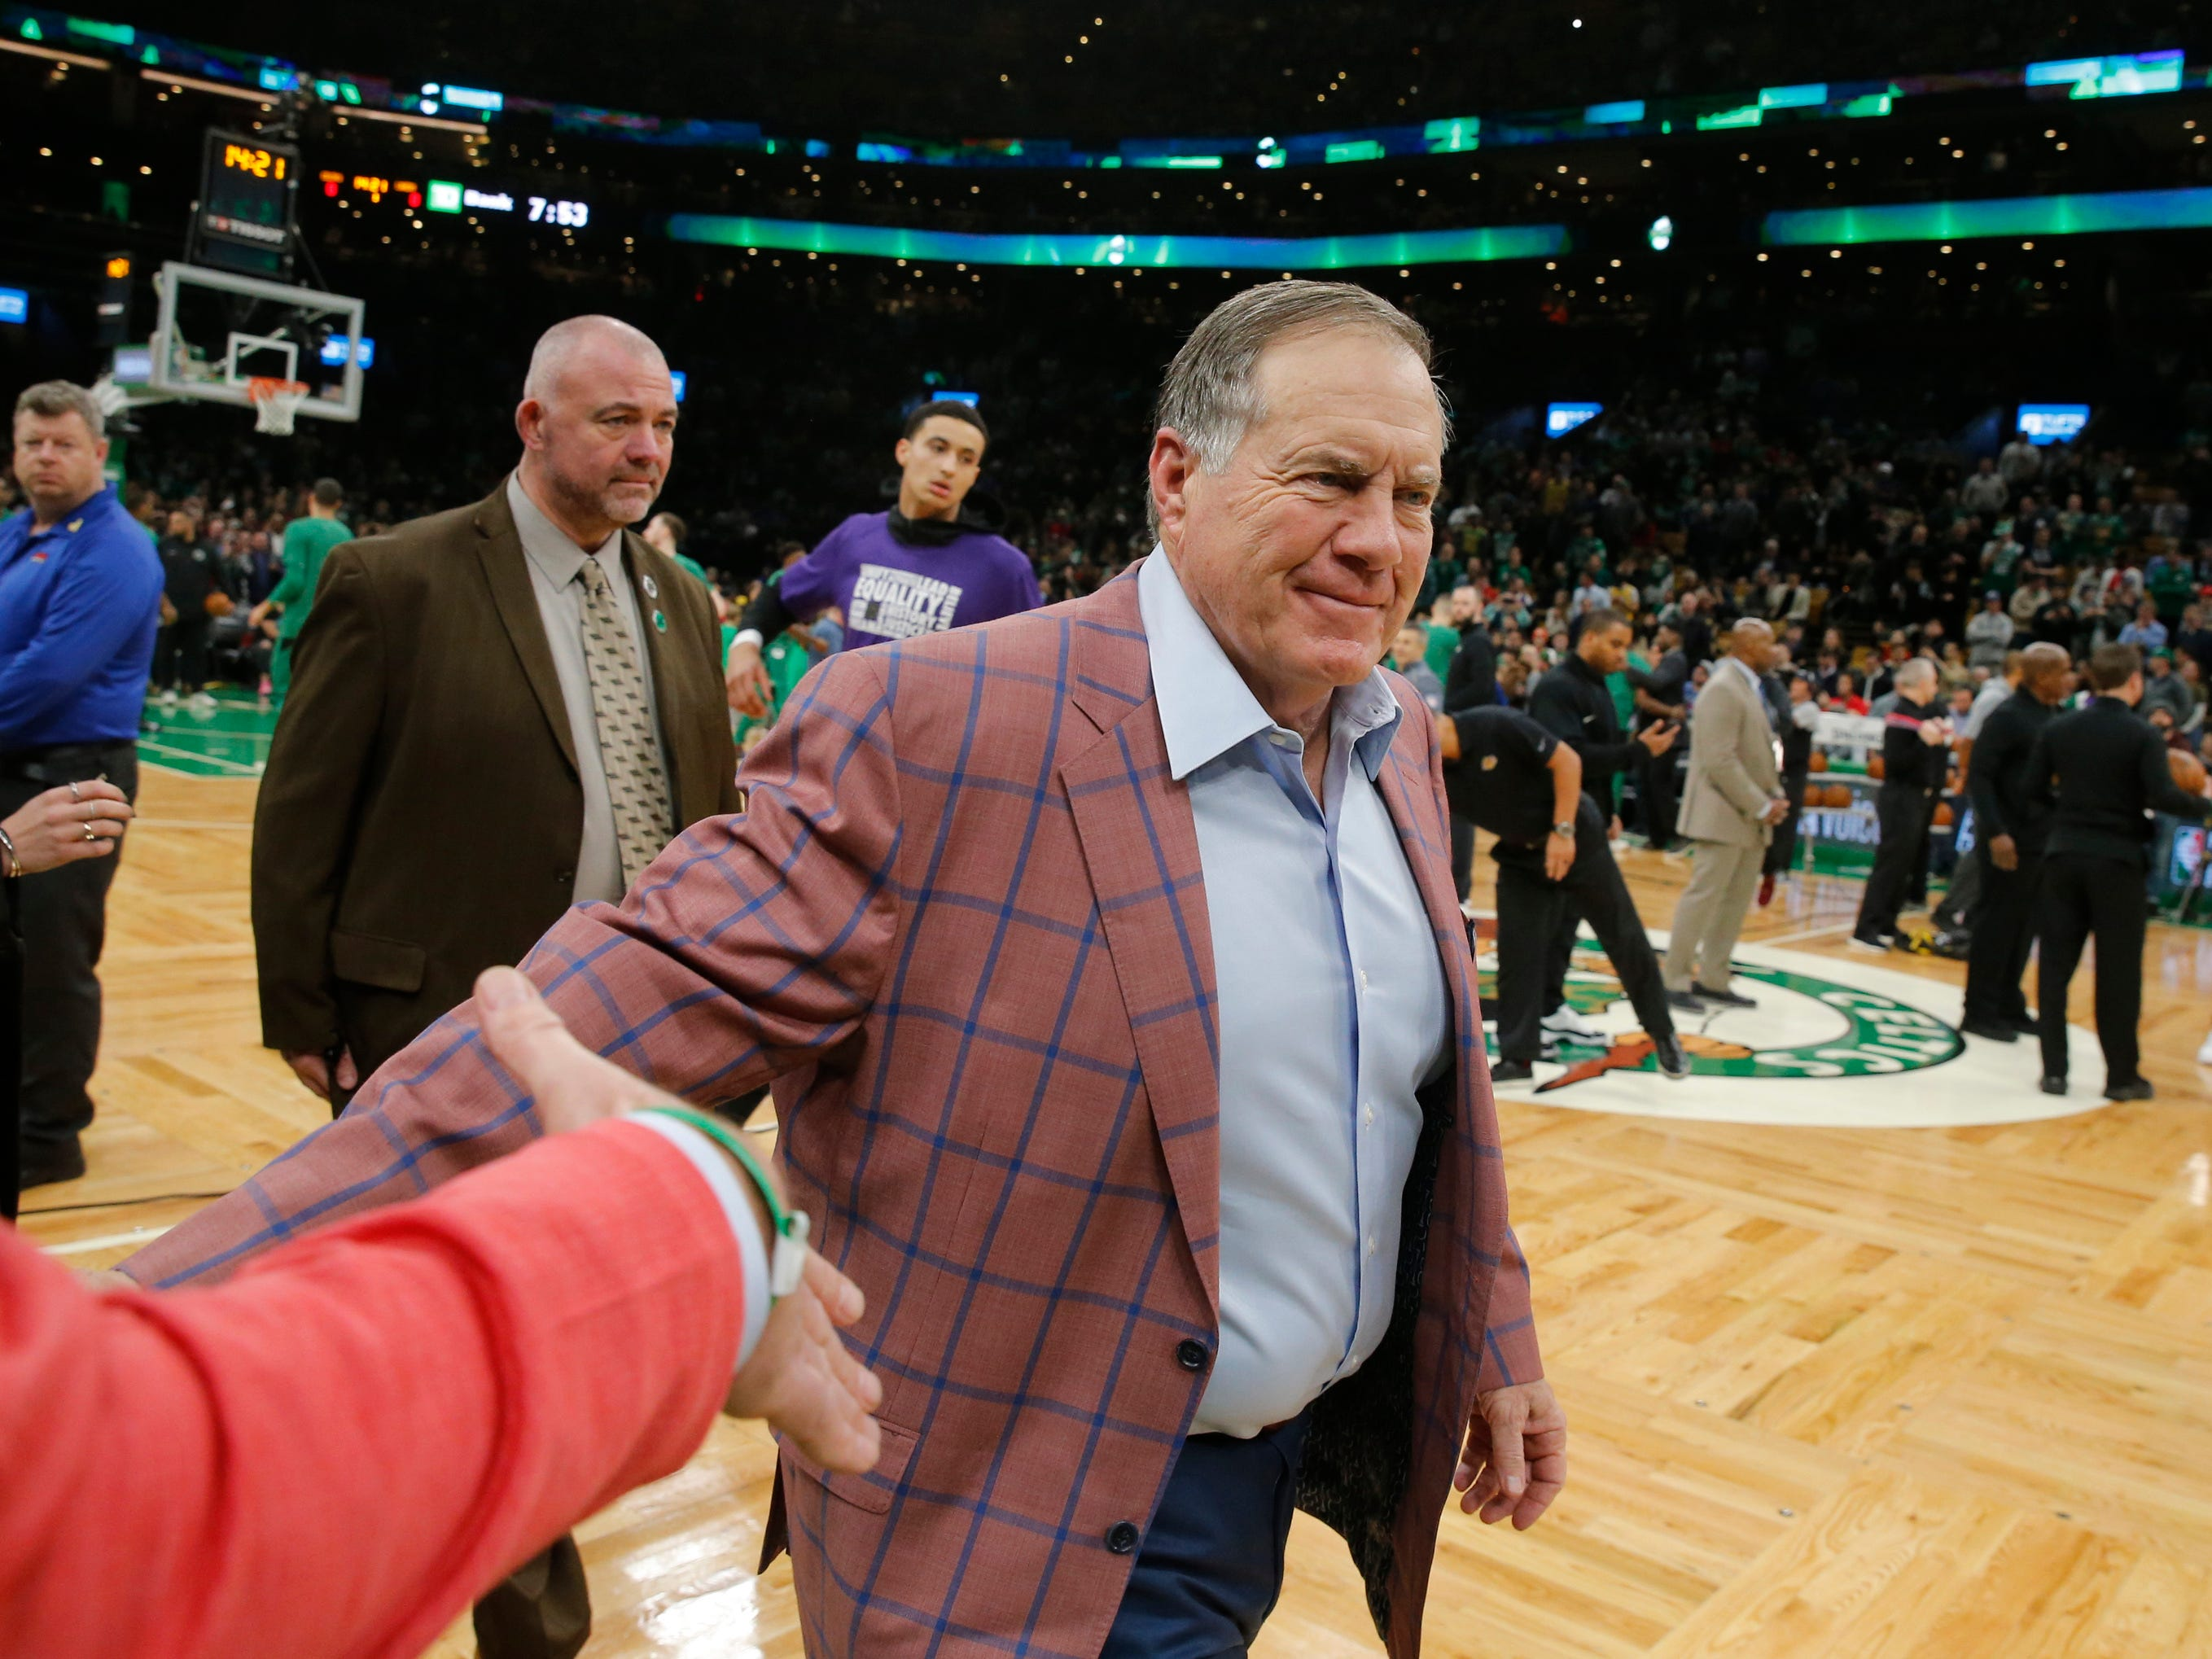 Feb. 7: New England Patriots head coach Bill Belichick walks to his seat before the start of the game between the Boston Celtics and Los Angeles Lakers  at TD Garden.